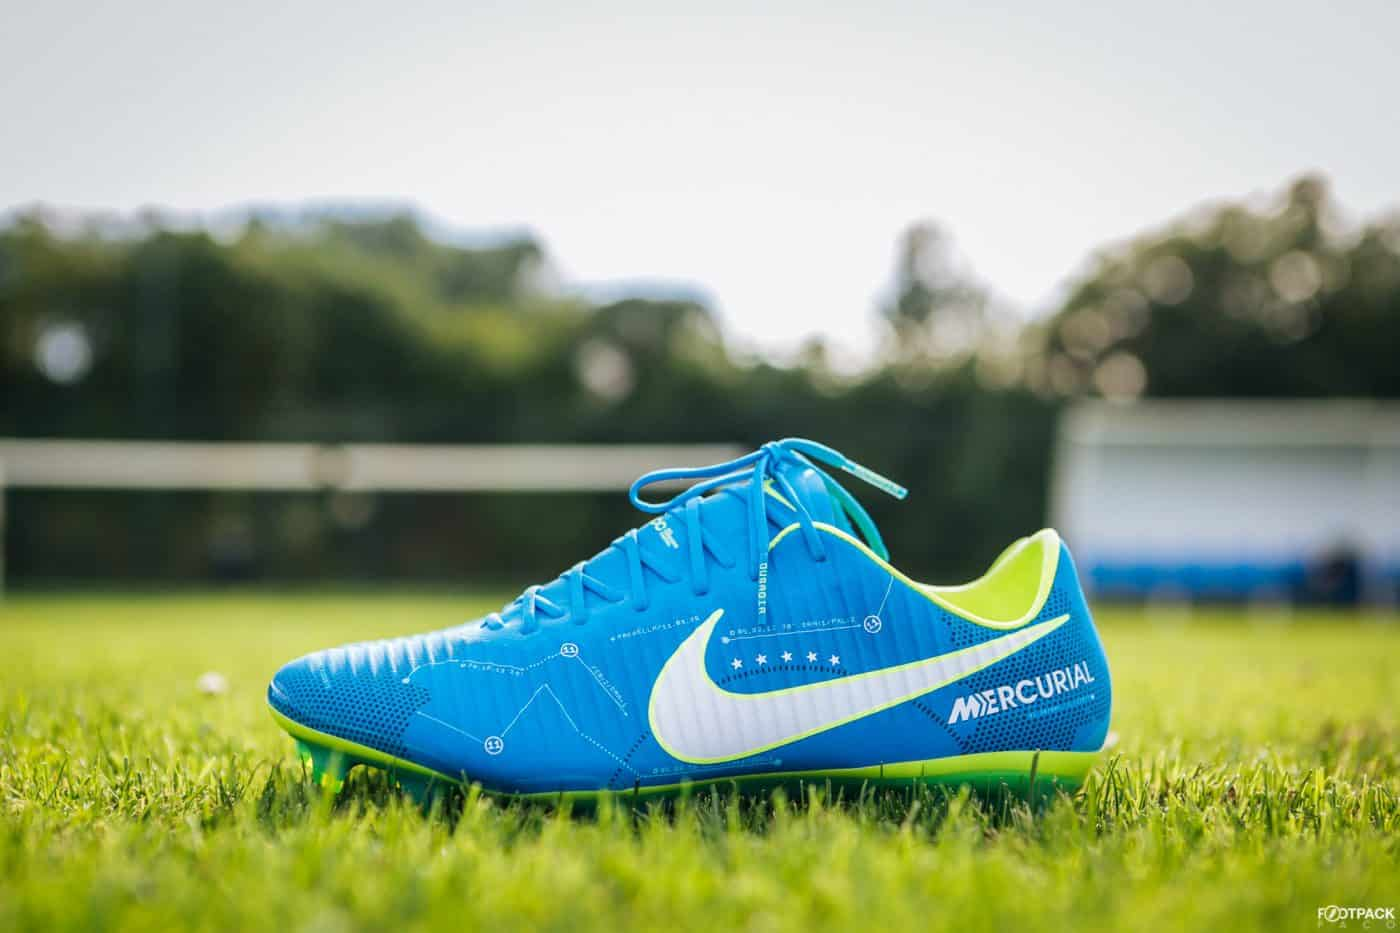 nike-mercurial-vapor-written-the-stars-neymar-footpack-2